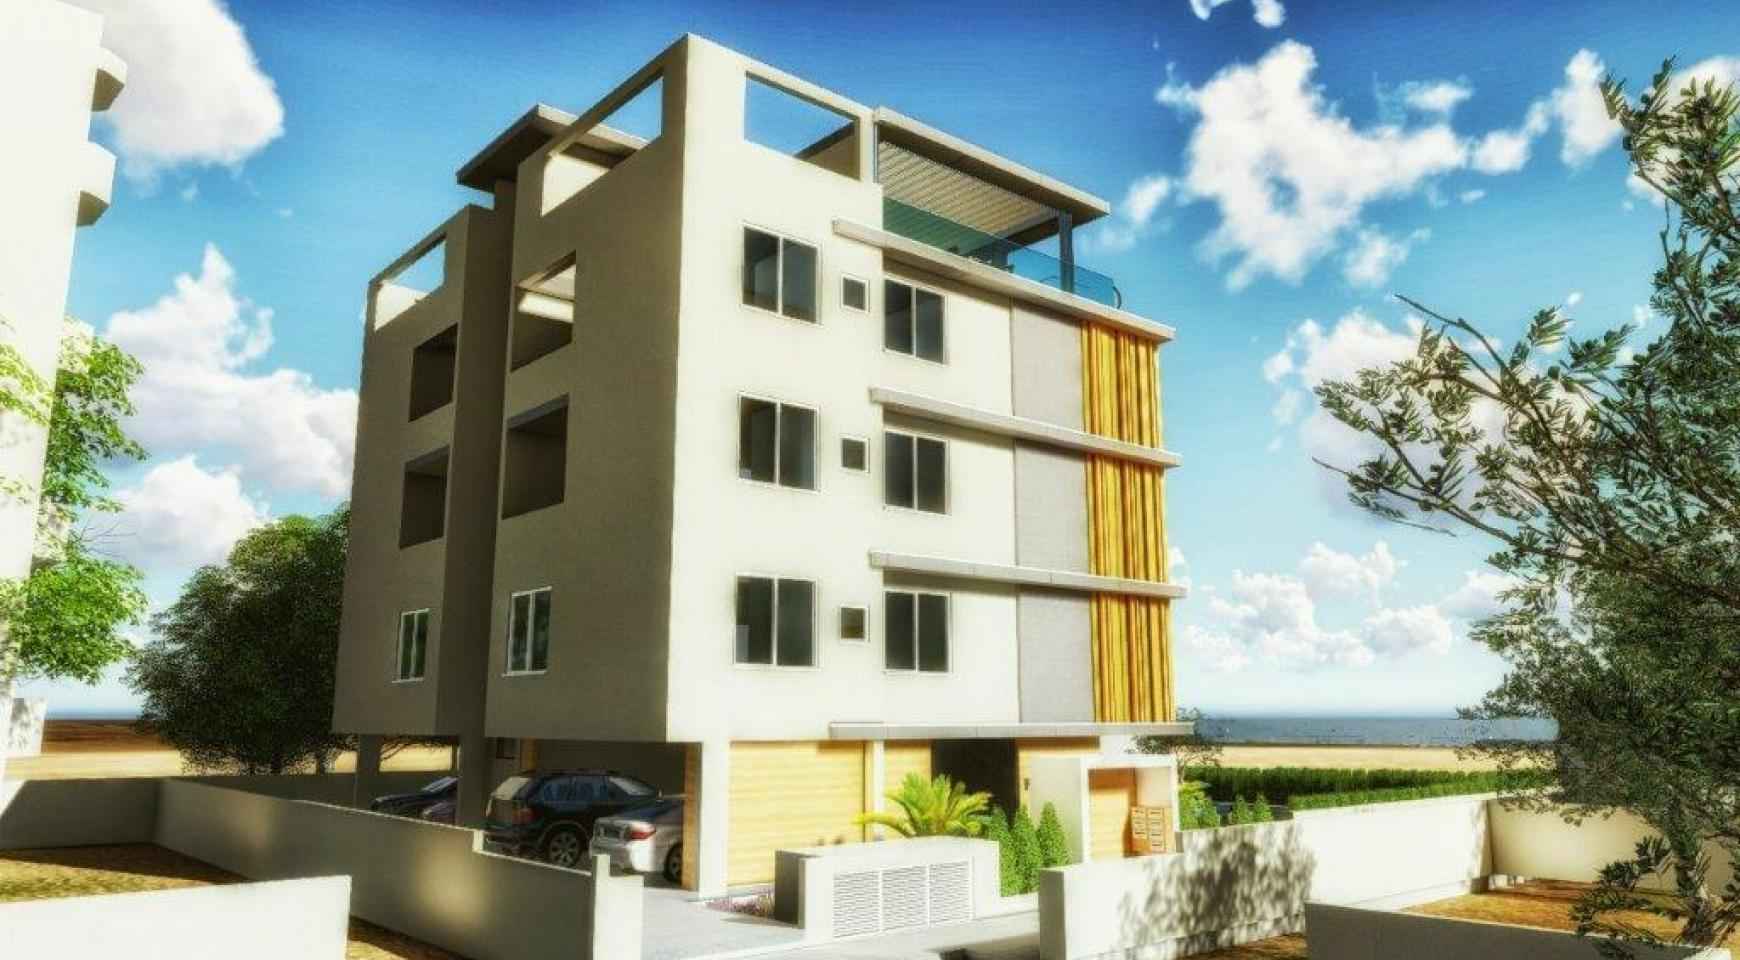 New 3 Bedroom Apartment in Agios Tychonas Area - 10